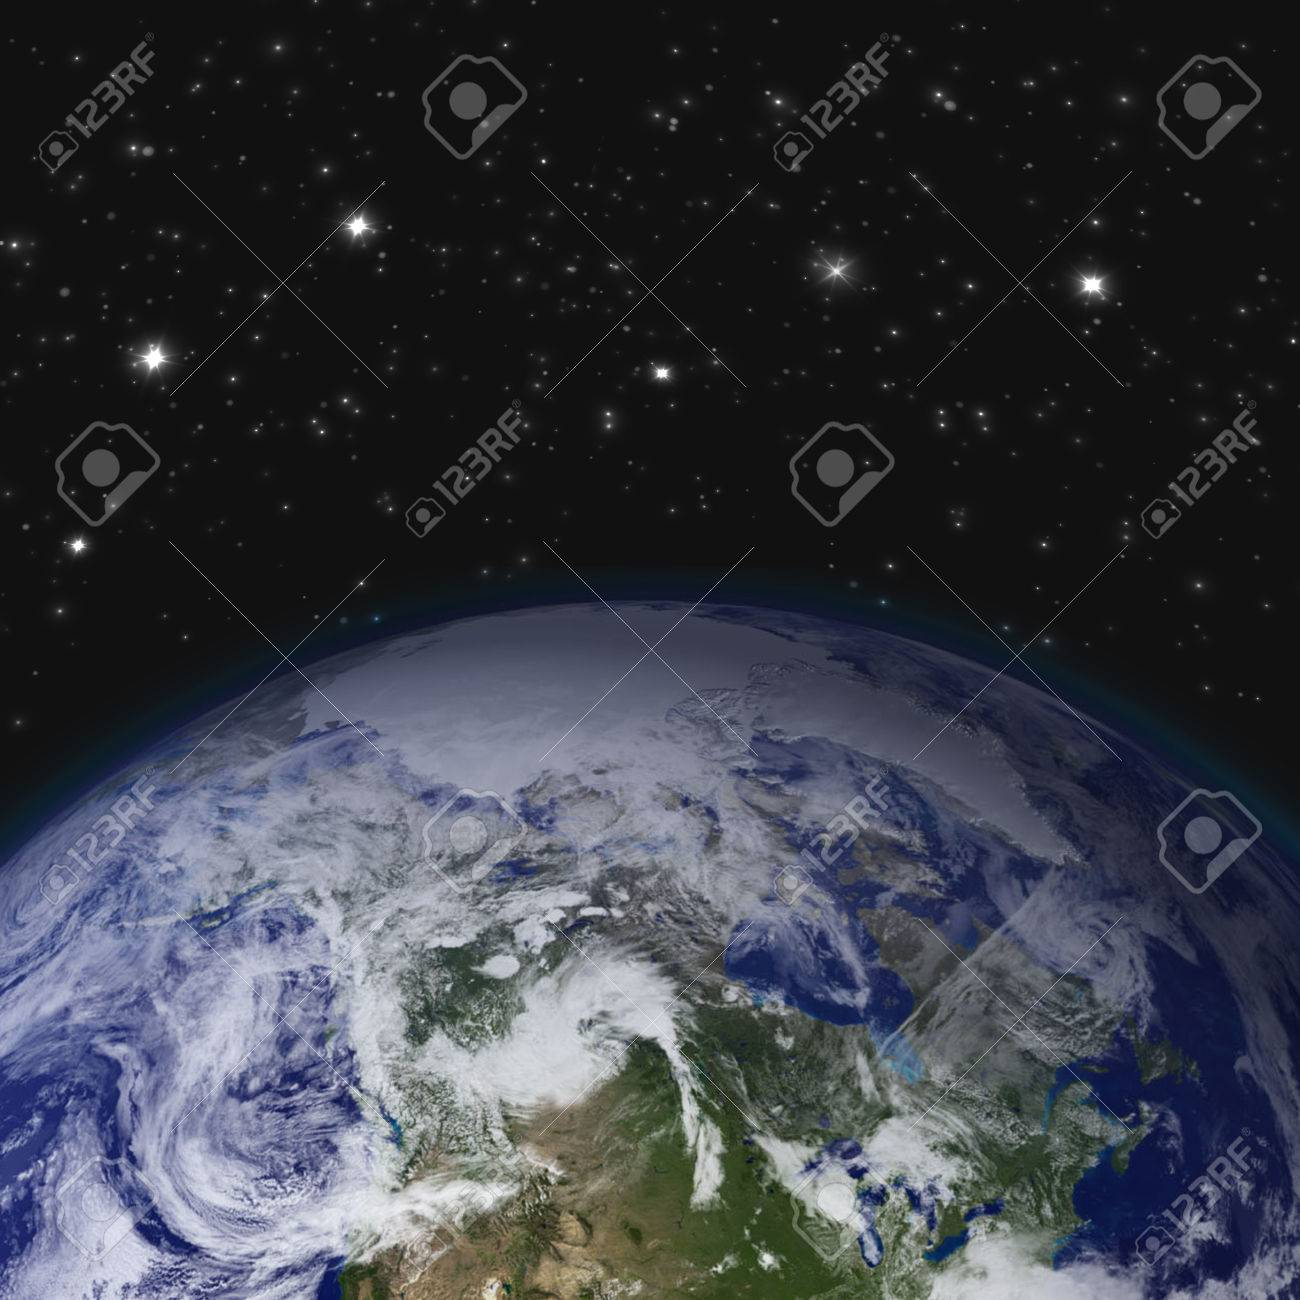 Creative abstract global communication scientific concept space creative abstract global communication scientific concept space view of earth planet globe with world map gumiabroncs Choice Image